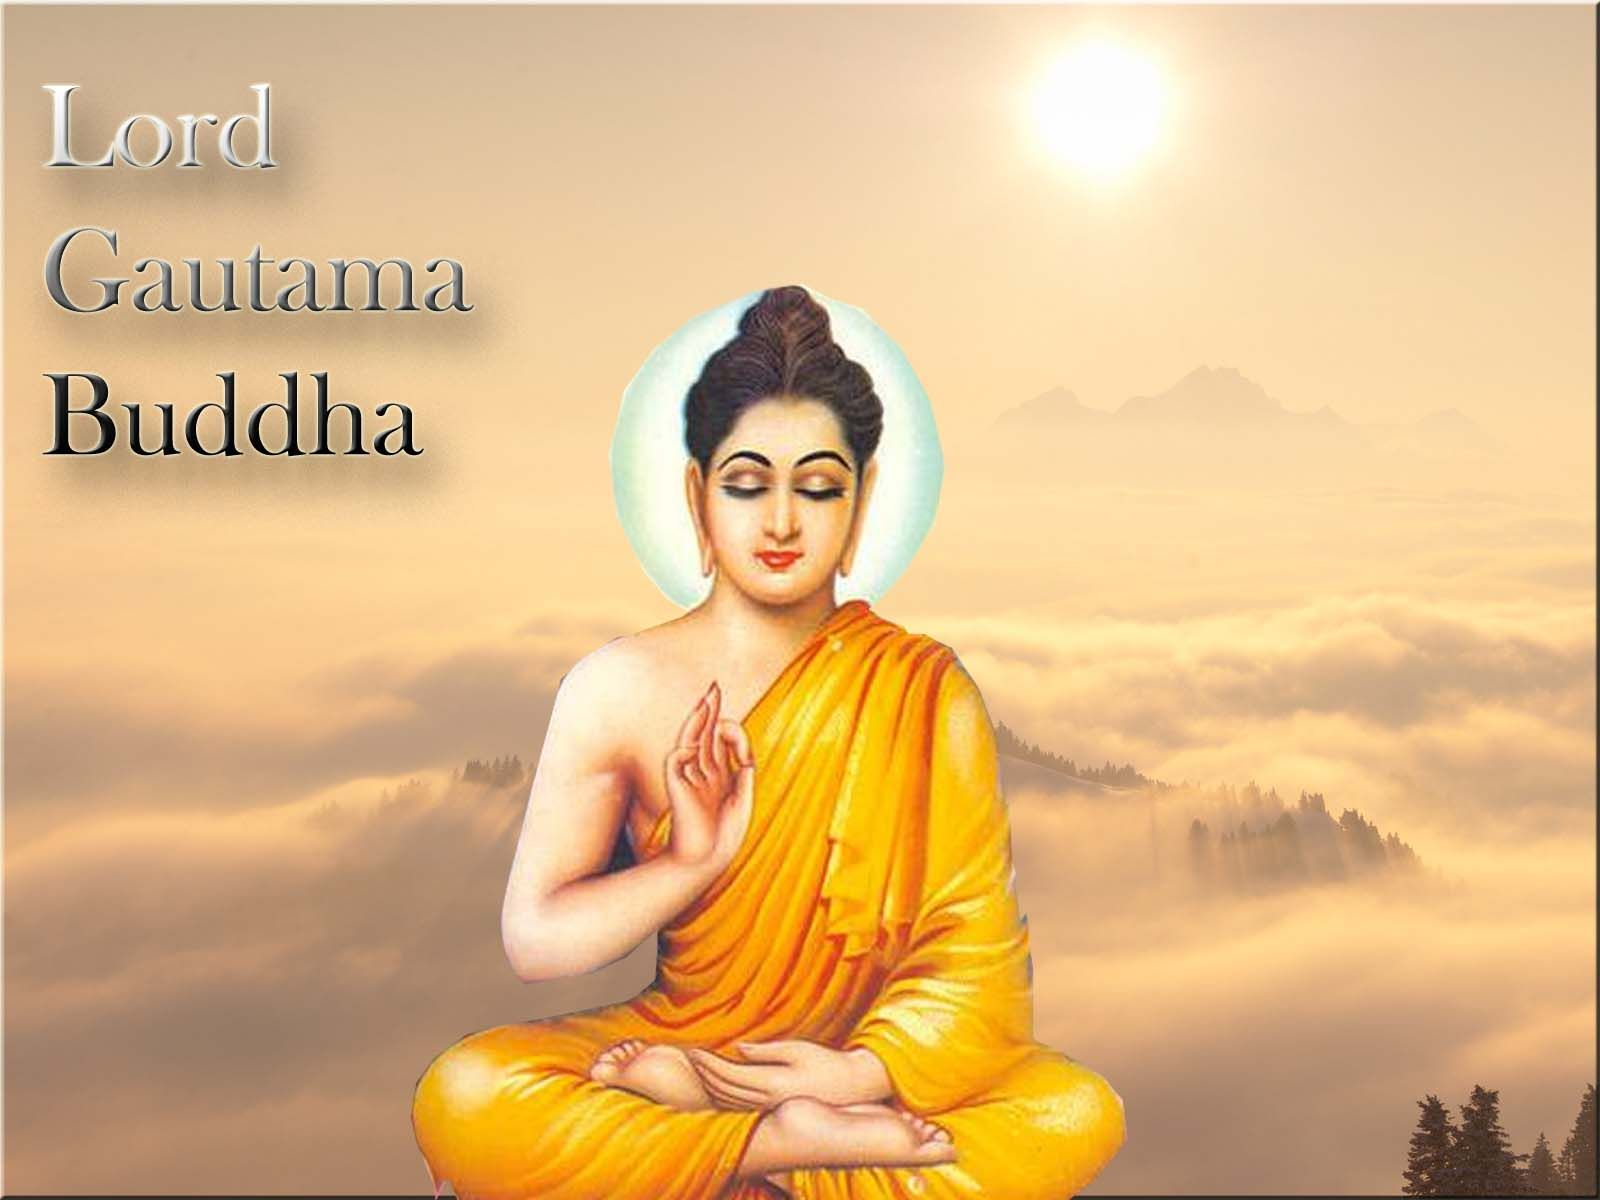 Martin luther king android apps on google play - Gautama Buddha Live Wallpaper Android Apps On Google Play